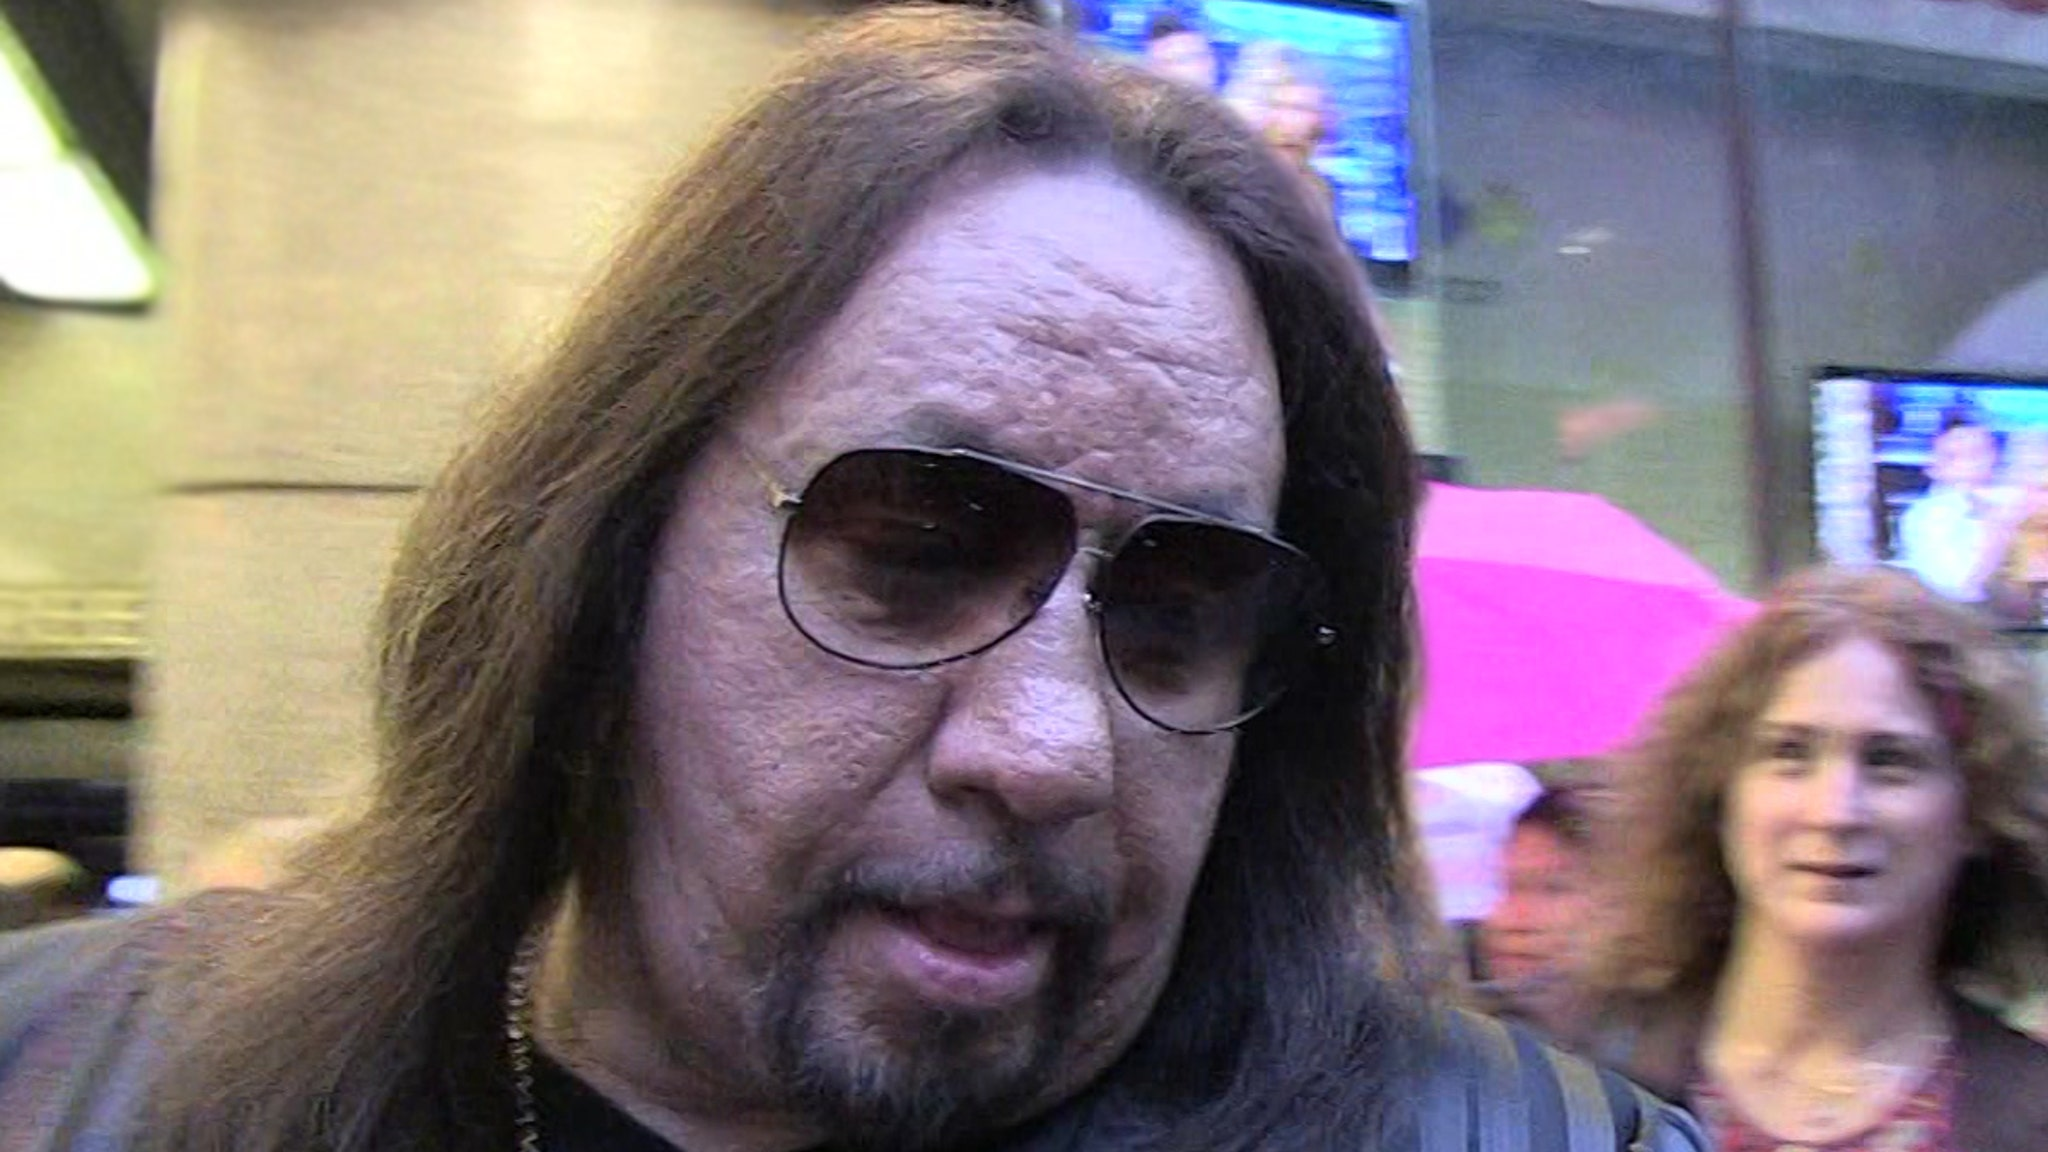 Ace Frehley's GF Claims KISS Rocker Ambushed Home, Left Her High and Dry